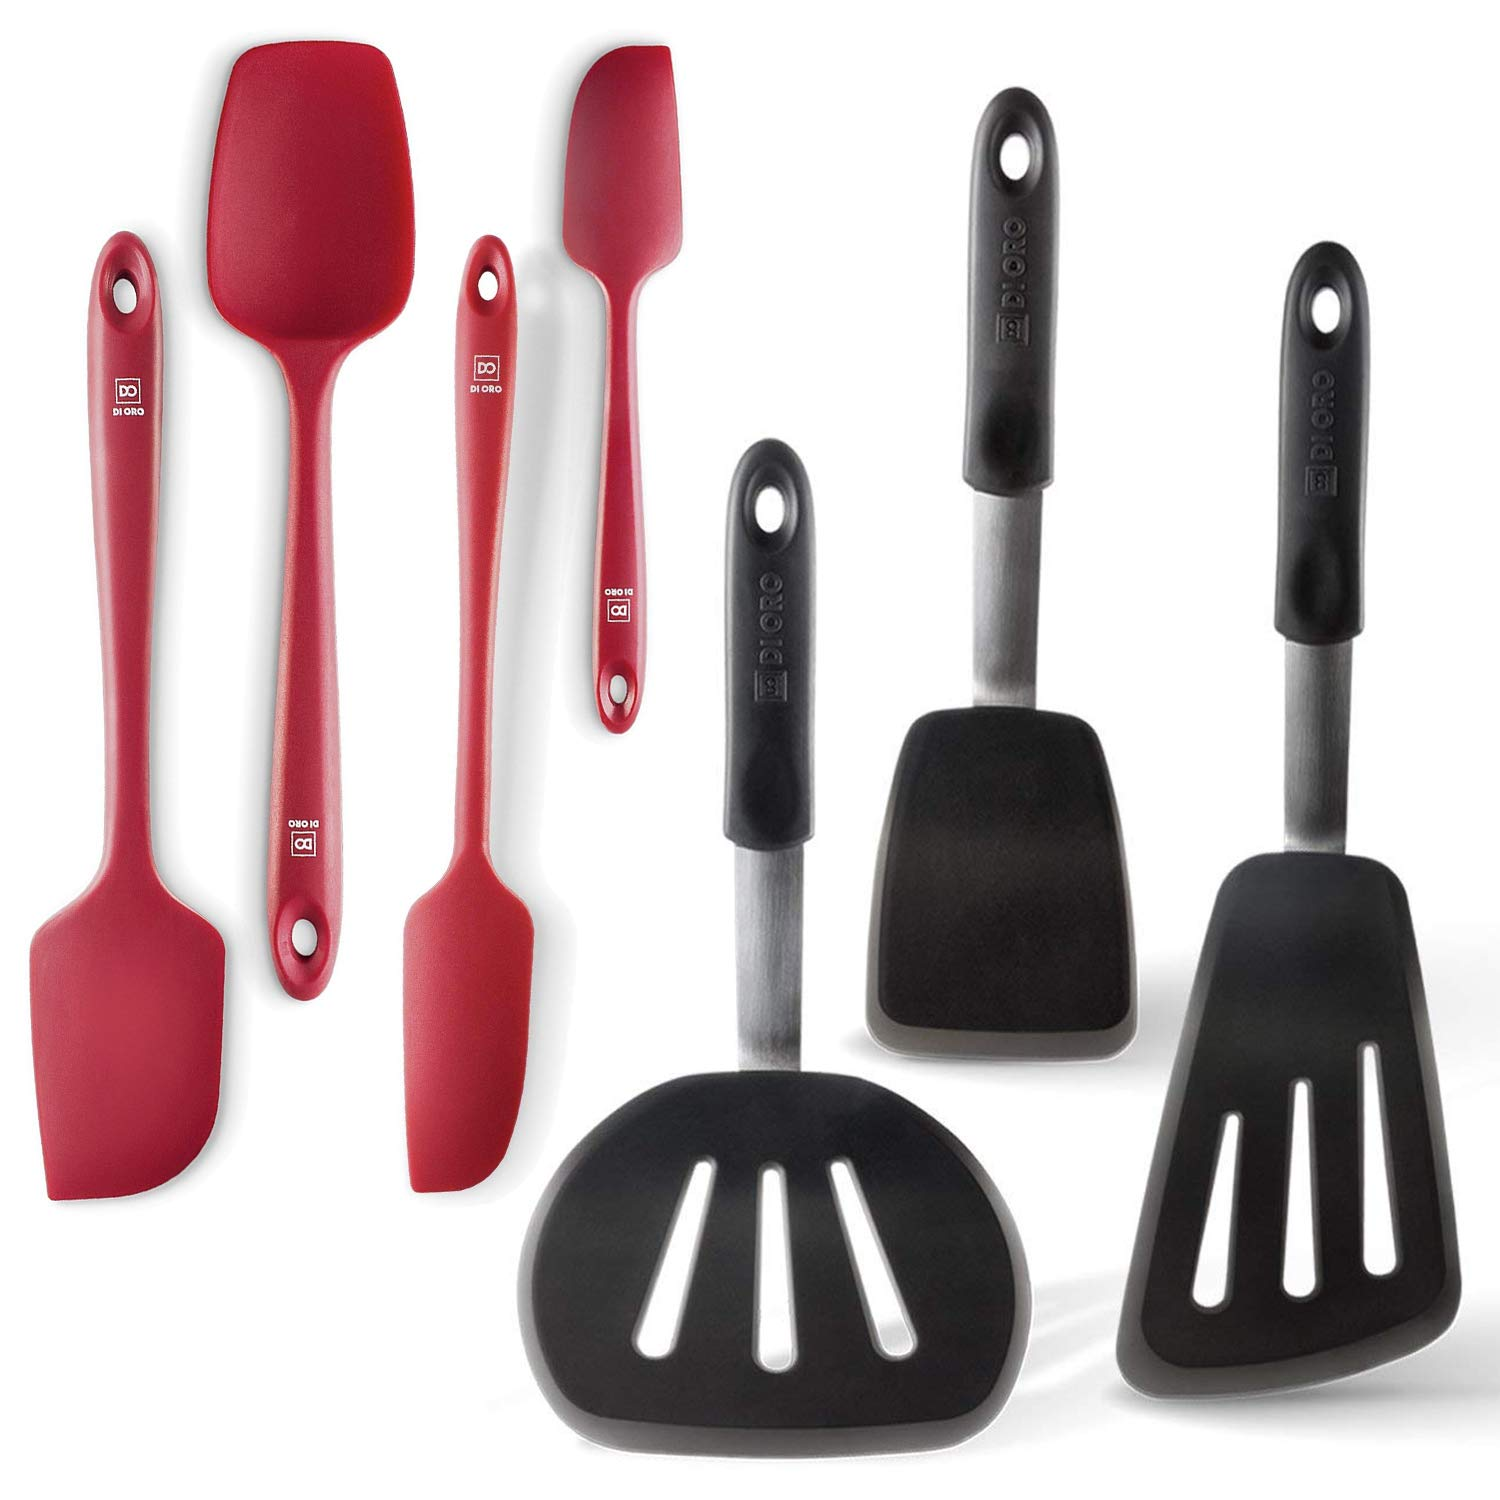 Best Silicone Cooking Utensils For Nonstick Cookware